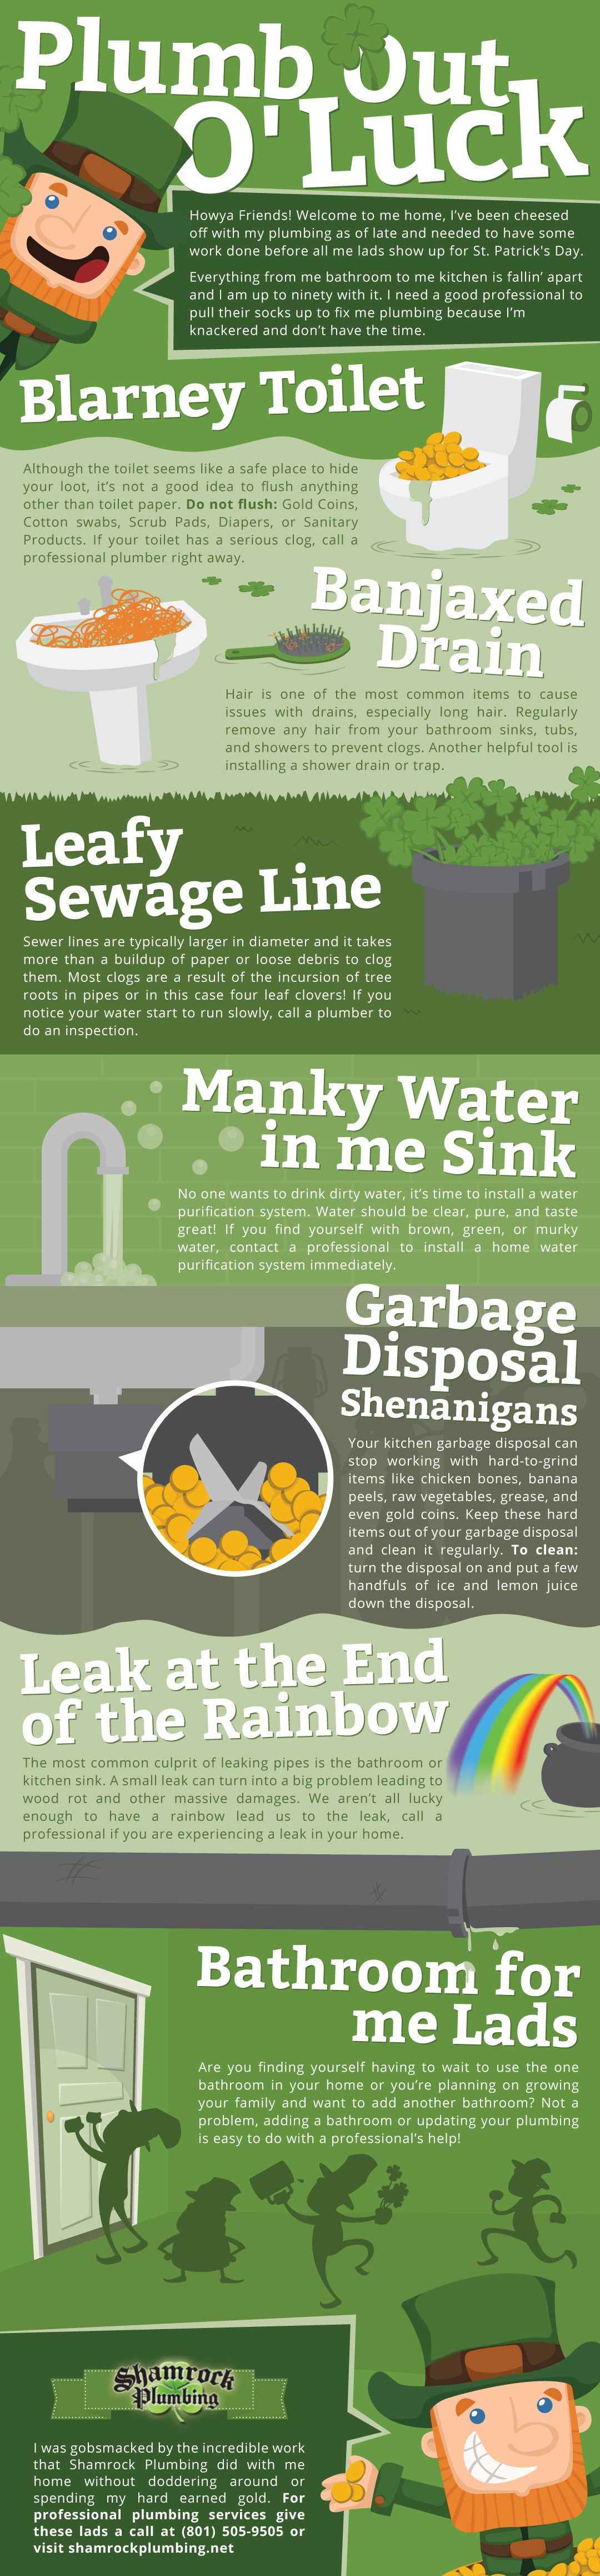 plumbing issues infographic